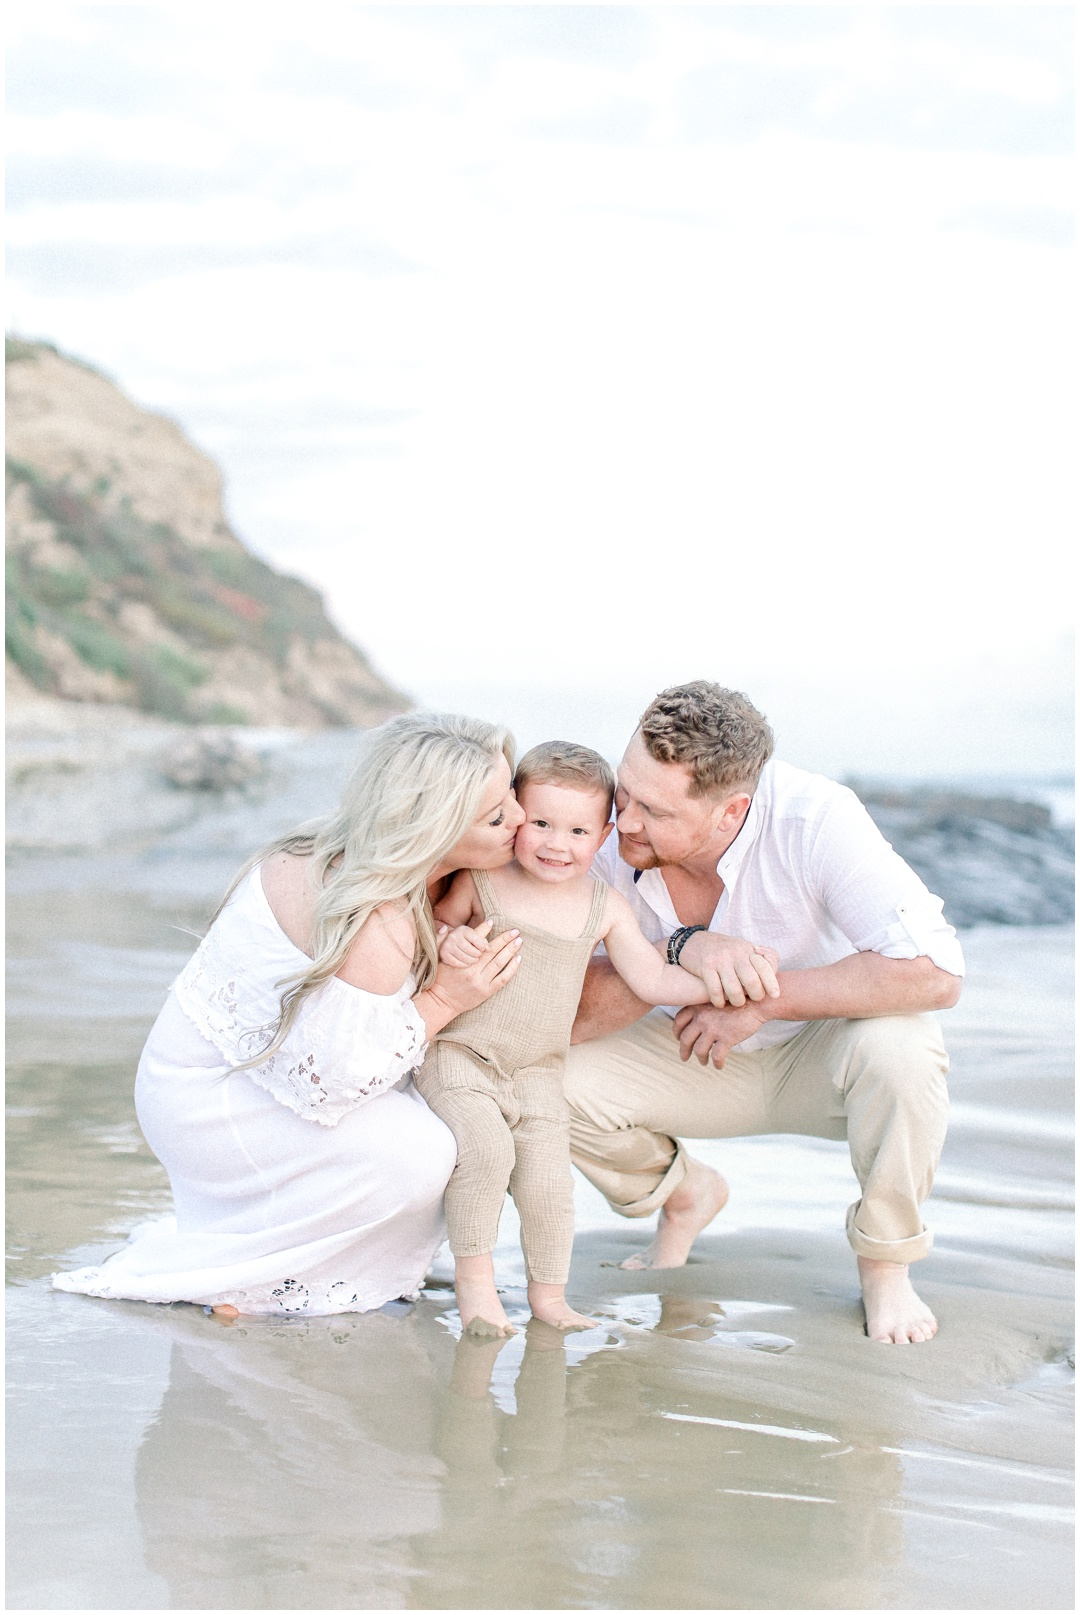 Newport_Beach_Newborn_Light_Airy_Natural_Photographer_Newport_Beach_Photographer_Orange_County_Family_Photographer_Cori_Kleckner_Photography_Newport_Beach_Photographer_Maternity_kole_calhoun56_kole_calhoun_Jennifer_Calhoun_Knox_Calhoun_3706.jpg